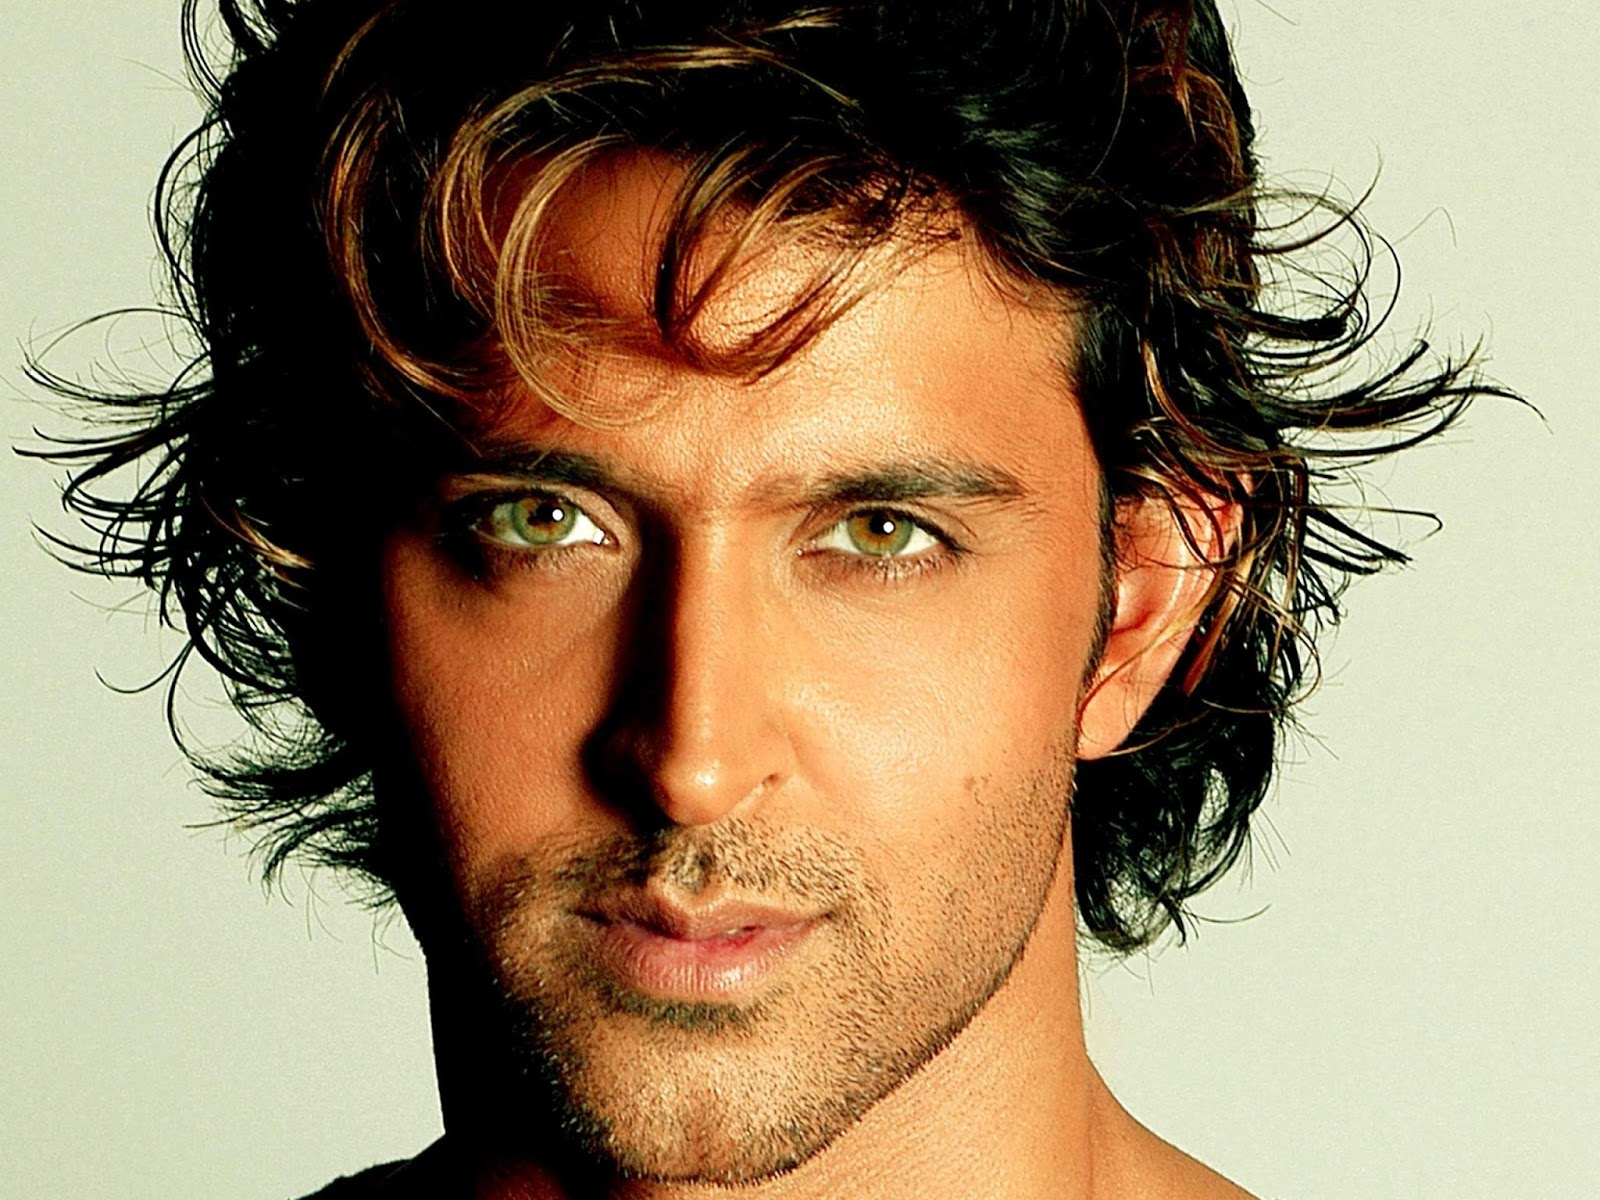 Hrithik Roshan's Top 10 Highest Grossing Films mt Wiki, Hrithik Roshan Top 10 Highest Grossing Films Of All Time wikipedia, Biggest hits of his career koimoi